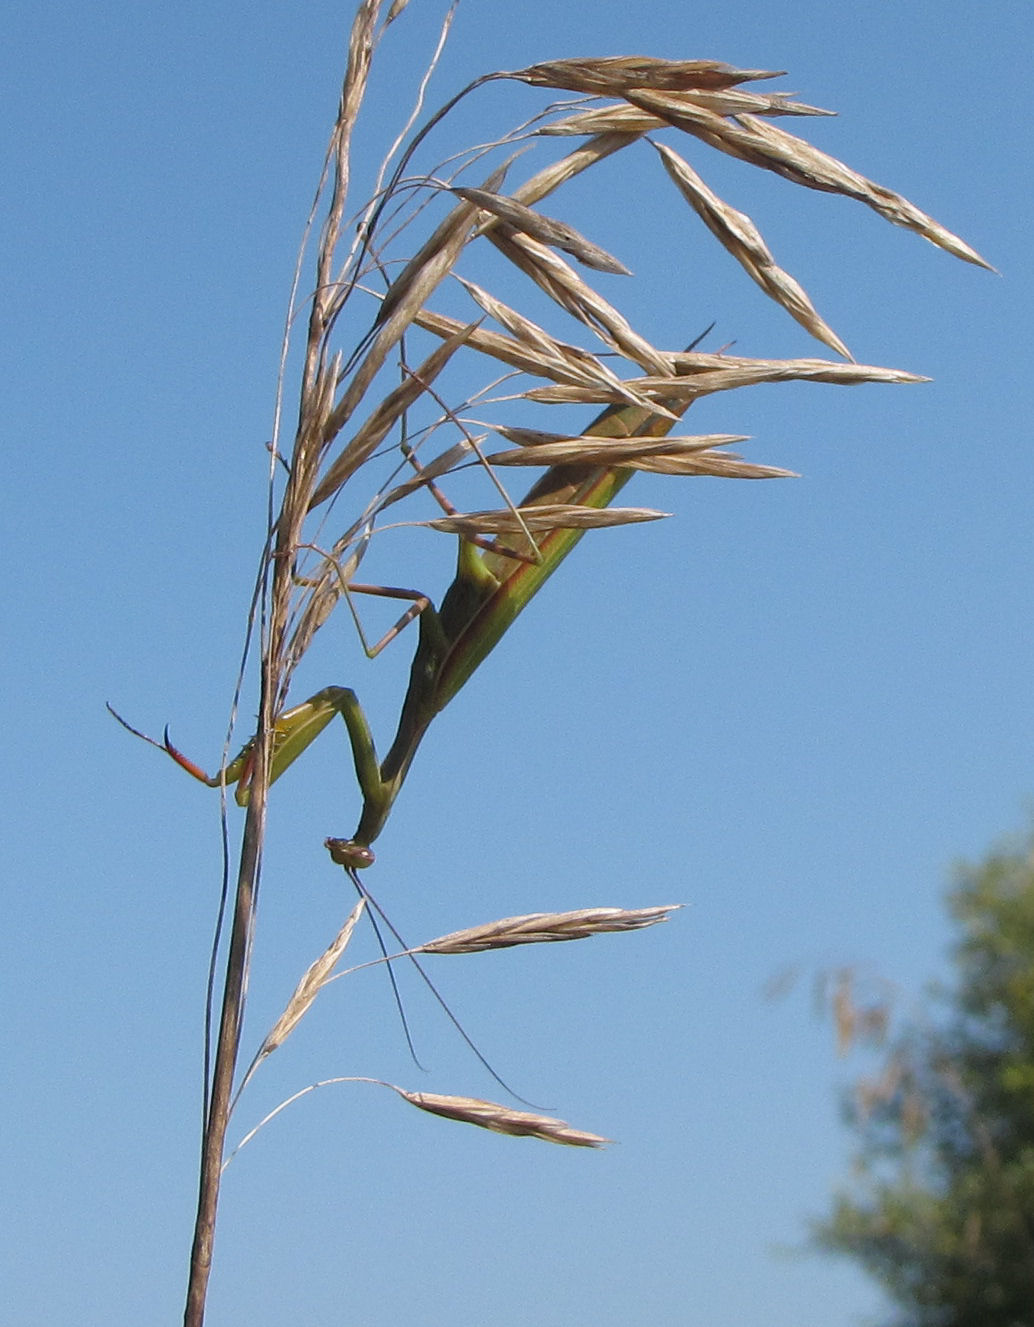 praying mantis on grass stem